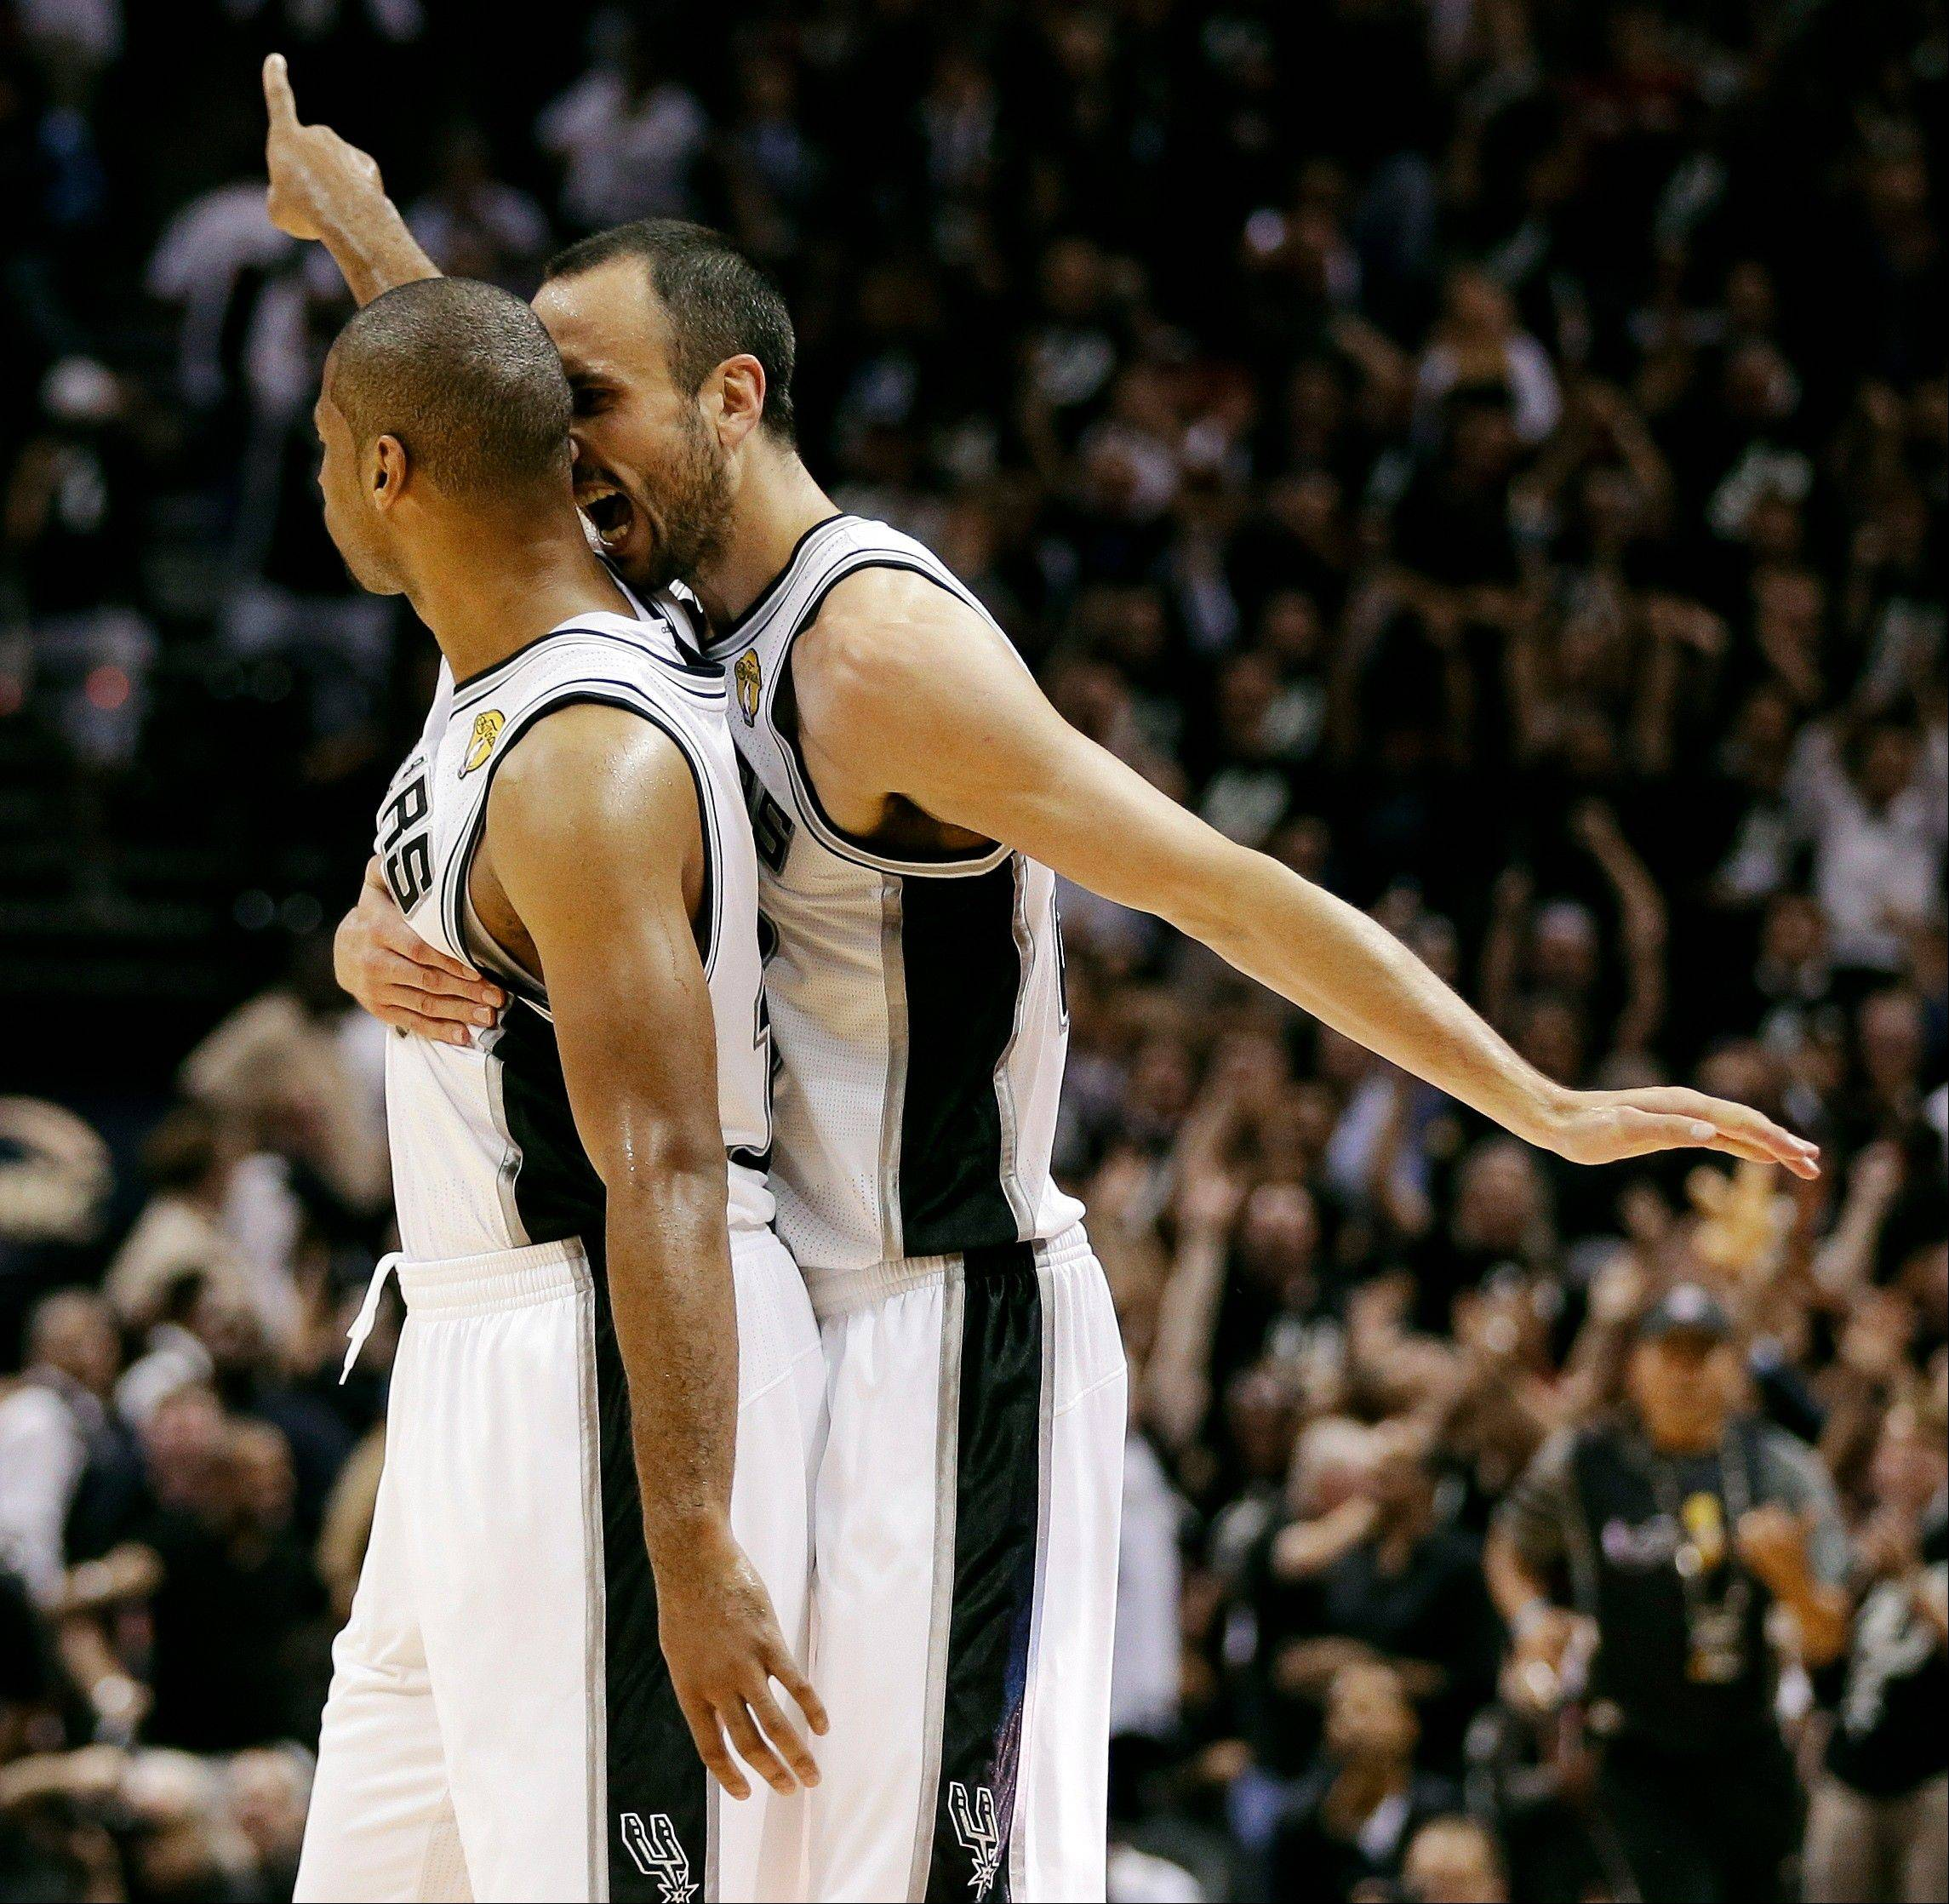 San Antonio Spurs' Gary Neal celebrates a 3-point basket -- one of 16 during the game against the Miami Heat Tuesday night. The Spurs beat the Heat 113-77 in Game 3 of the NBA Finals.